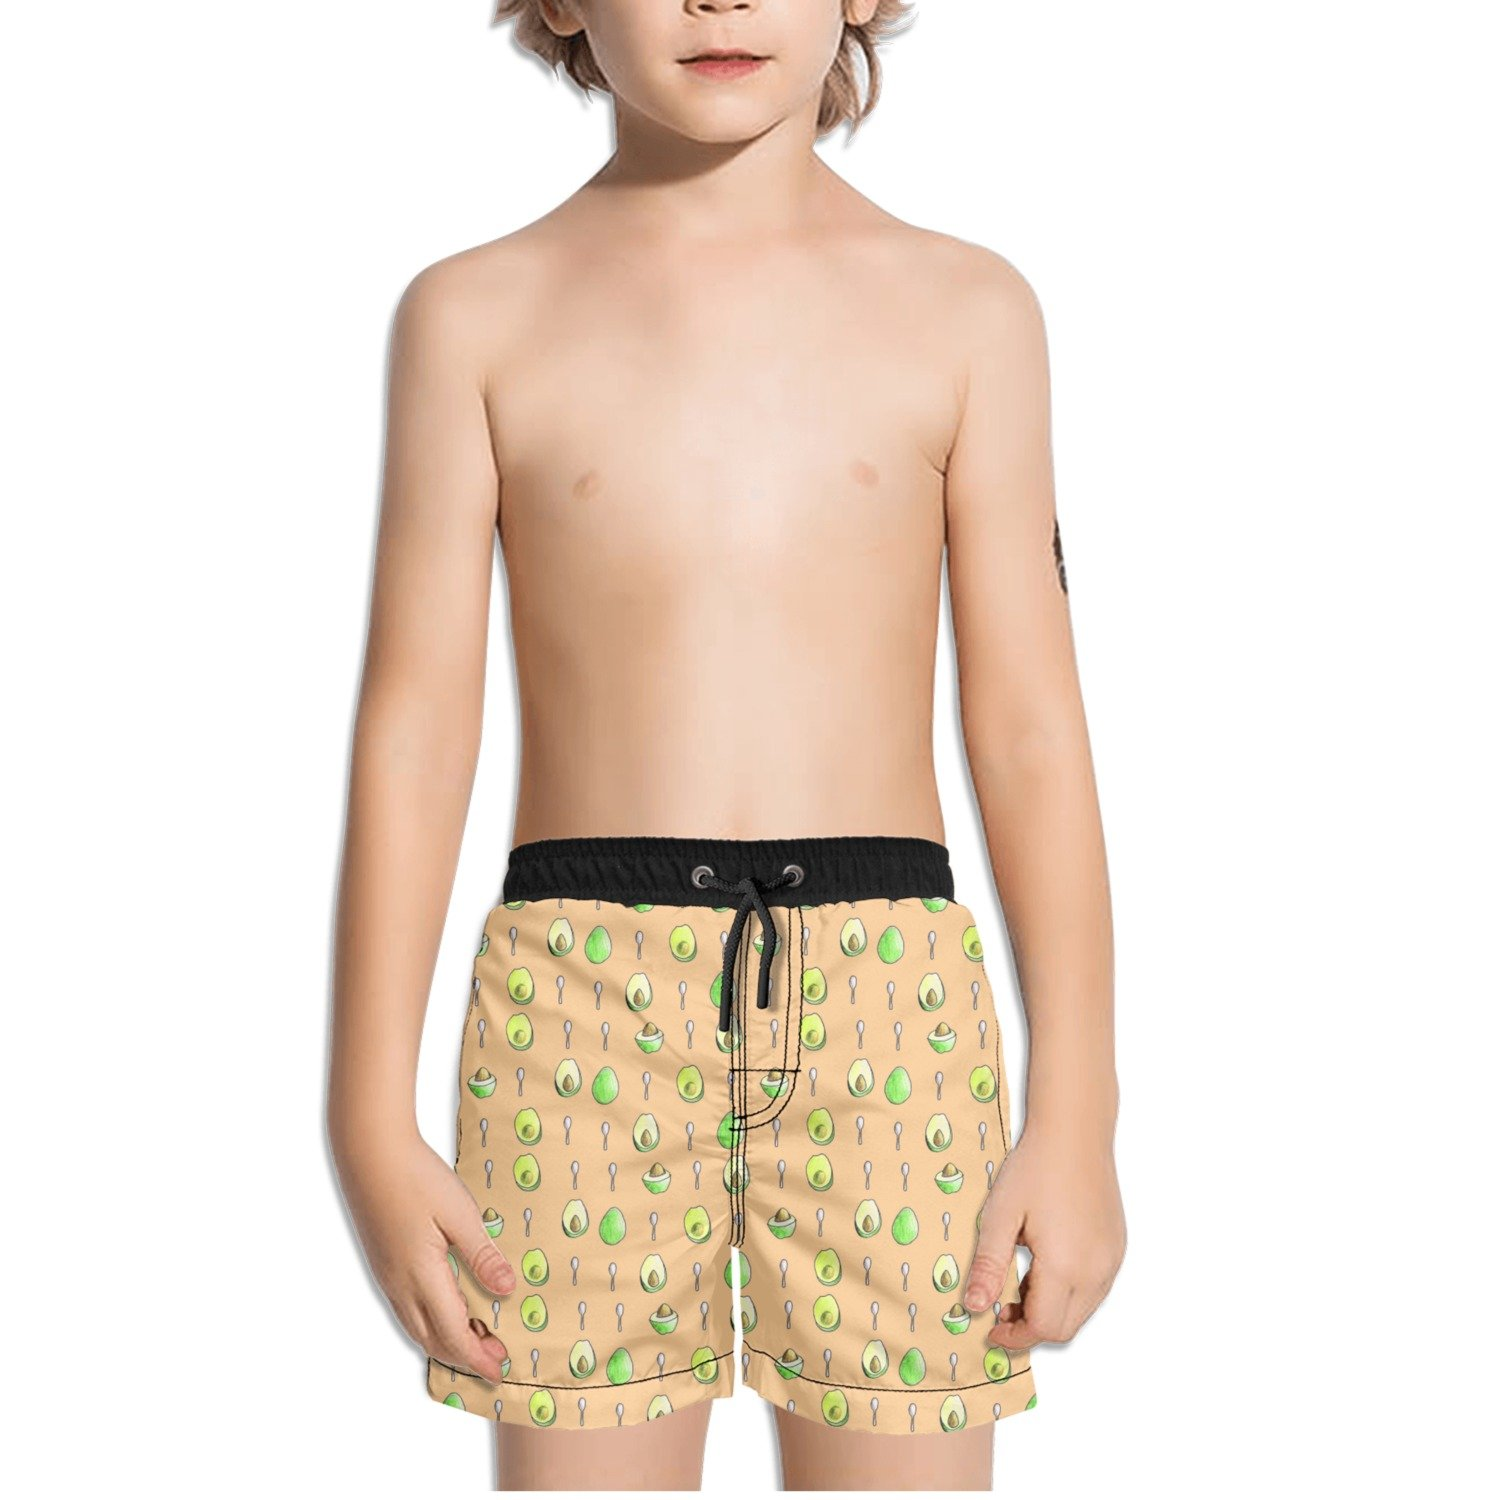 Trum Namii Boys Quick Dry Swim Trunks Avocado Green and Spoon Shorts